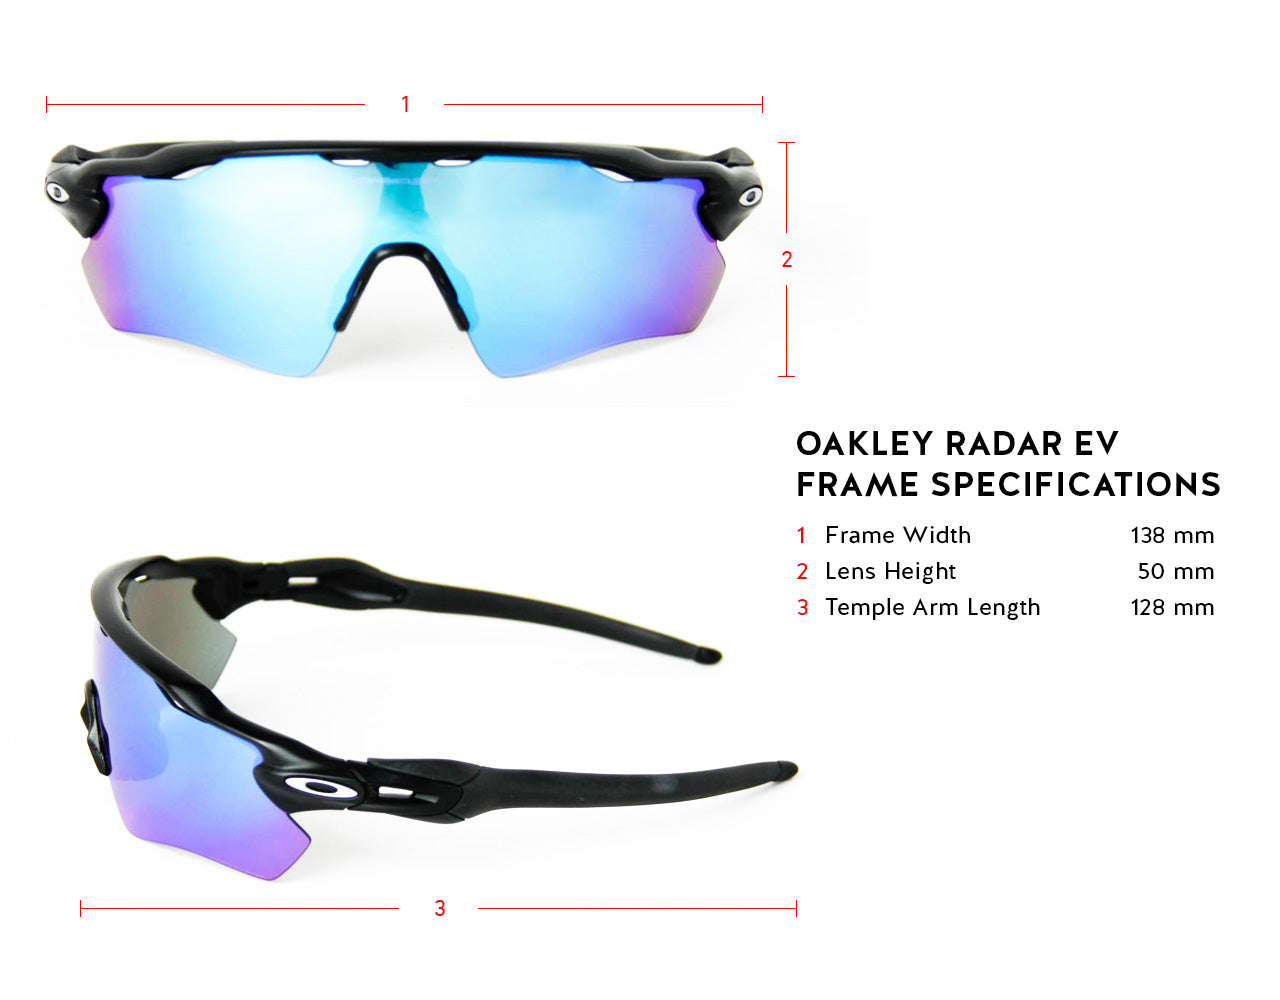 Oakley Radar EV Frame Specifications